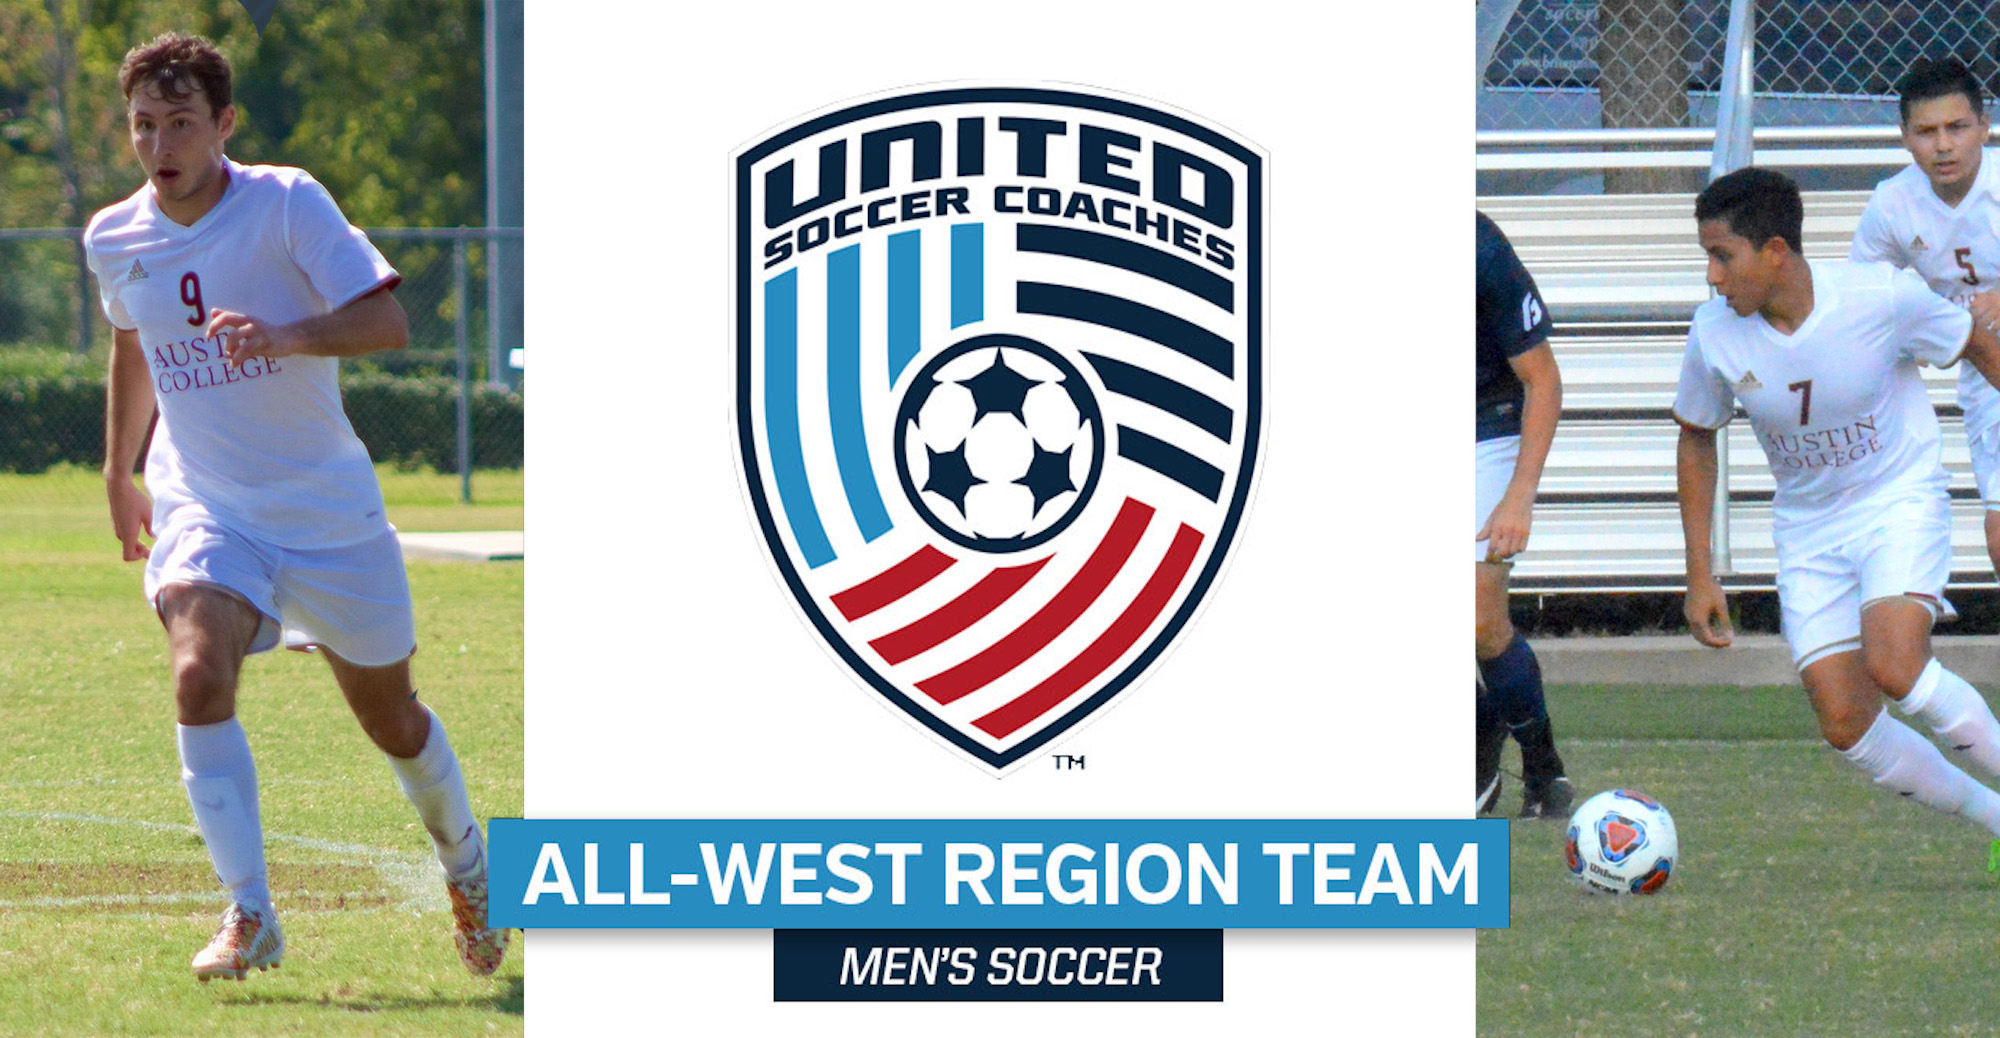 Quick, Le Earn All-West Region Honors